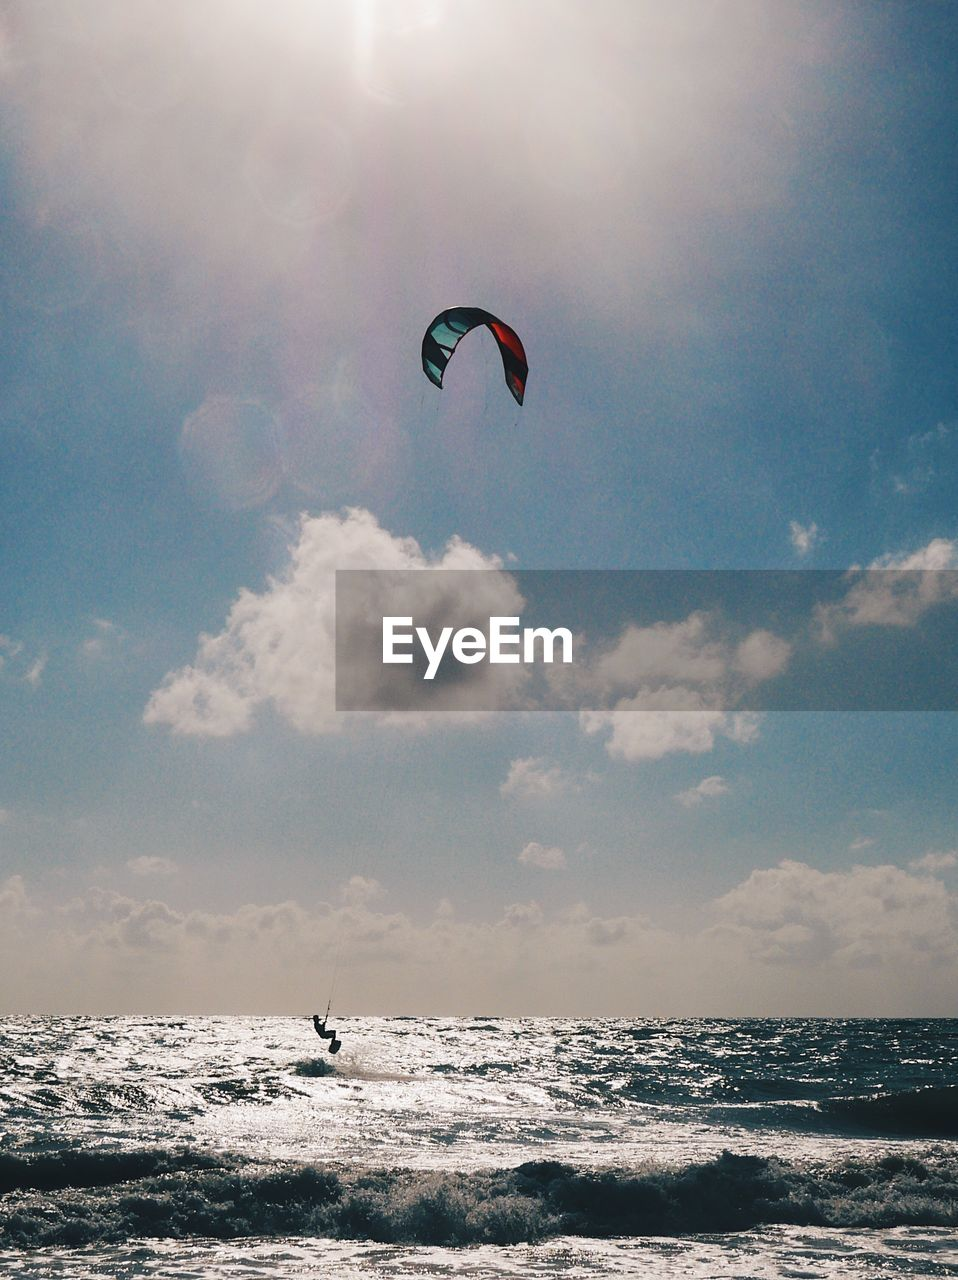 Person kiteboarding over sea against sky